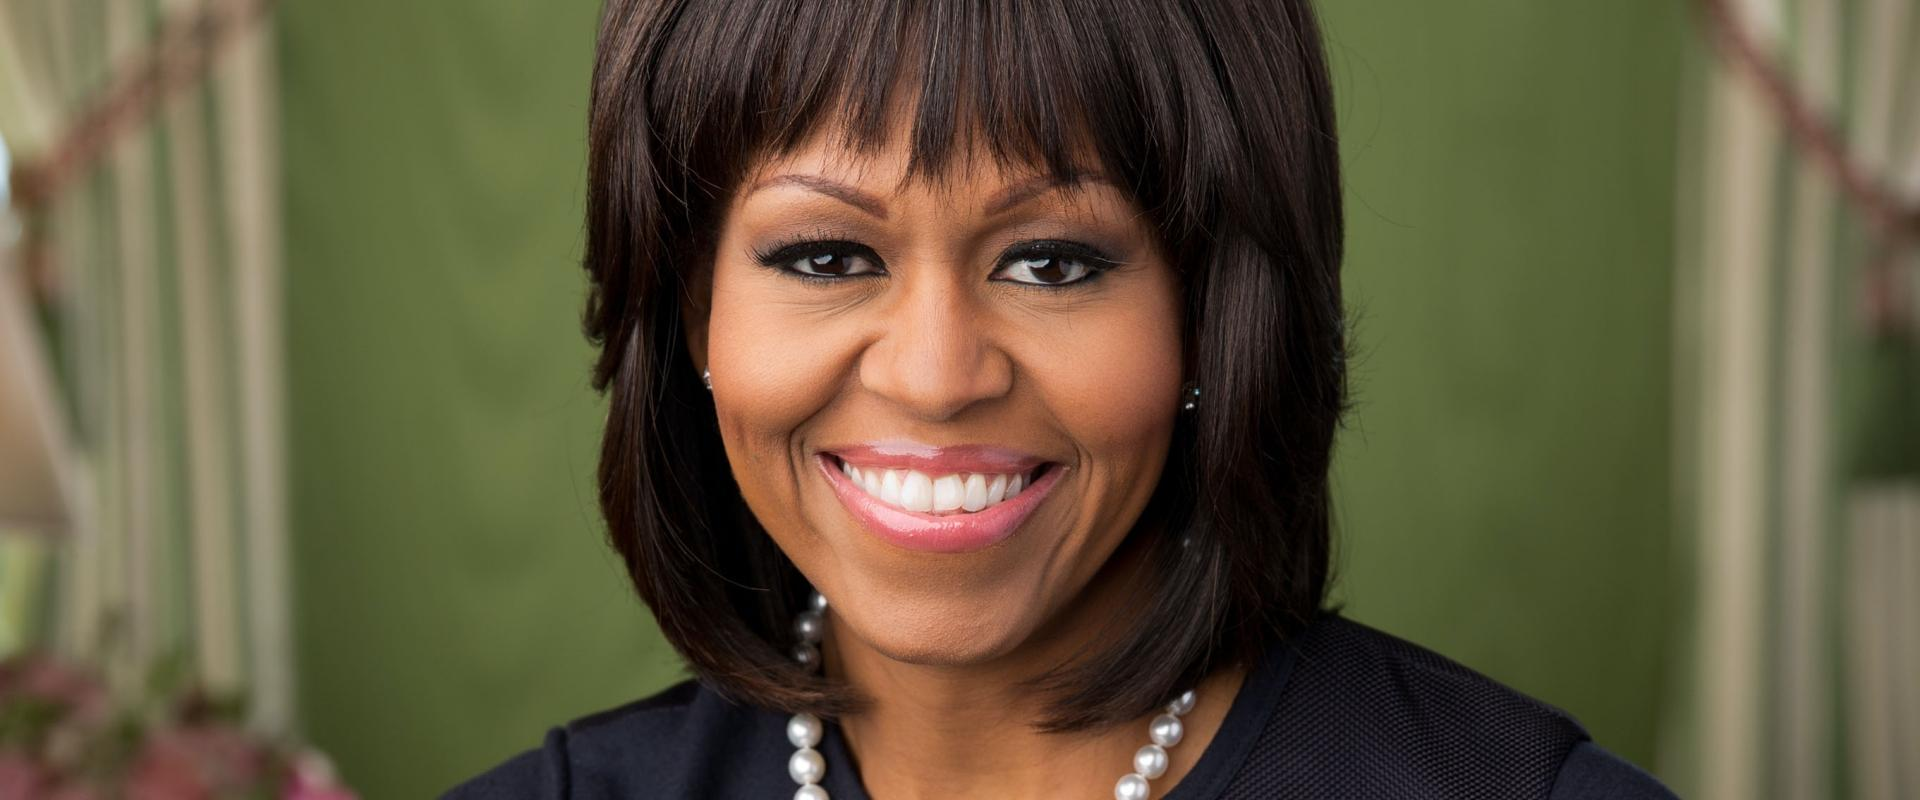 Meaningful Career Change According To Michelle Obama Naomi Ryland Tbd Community